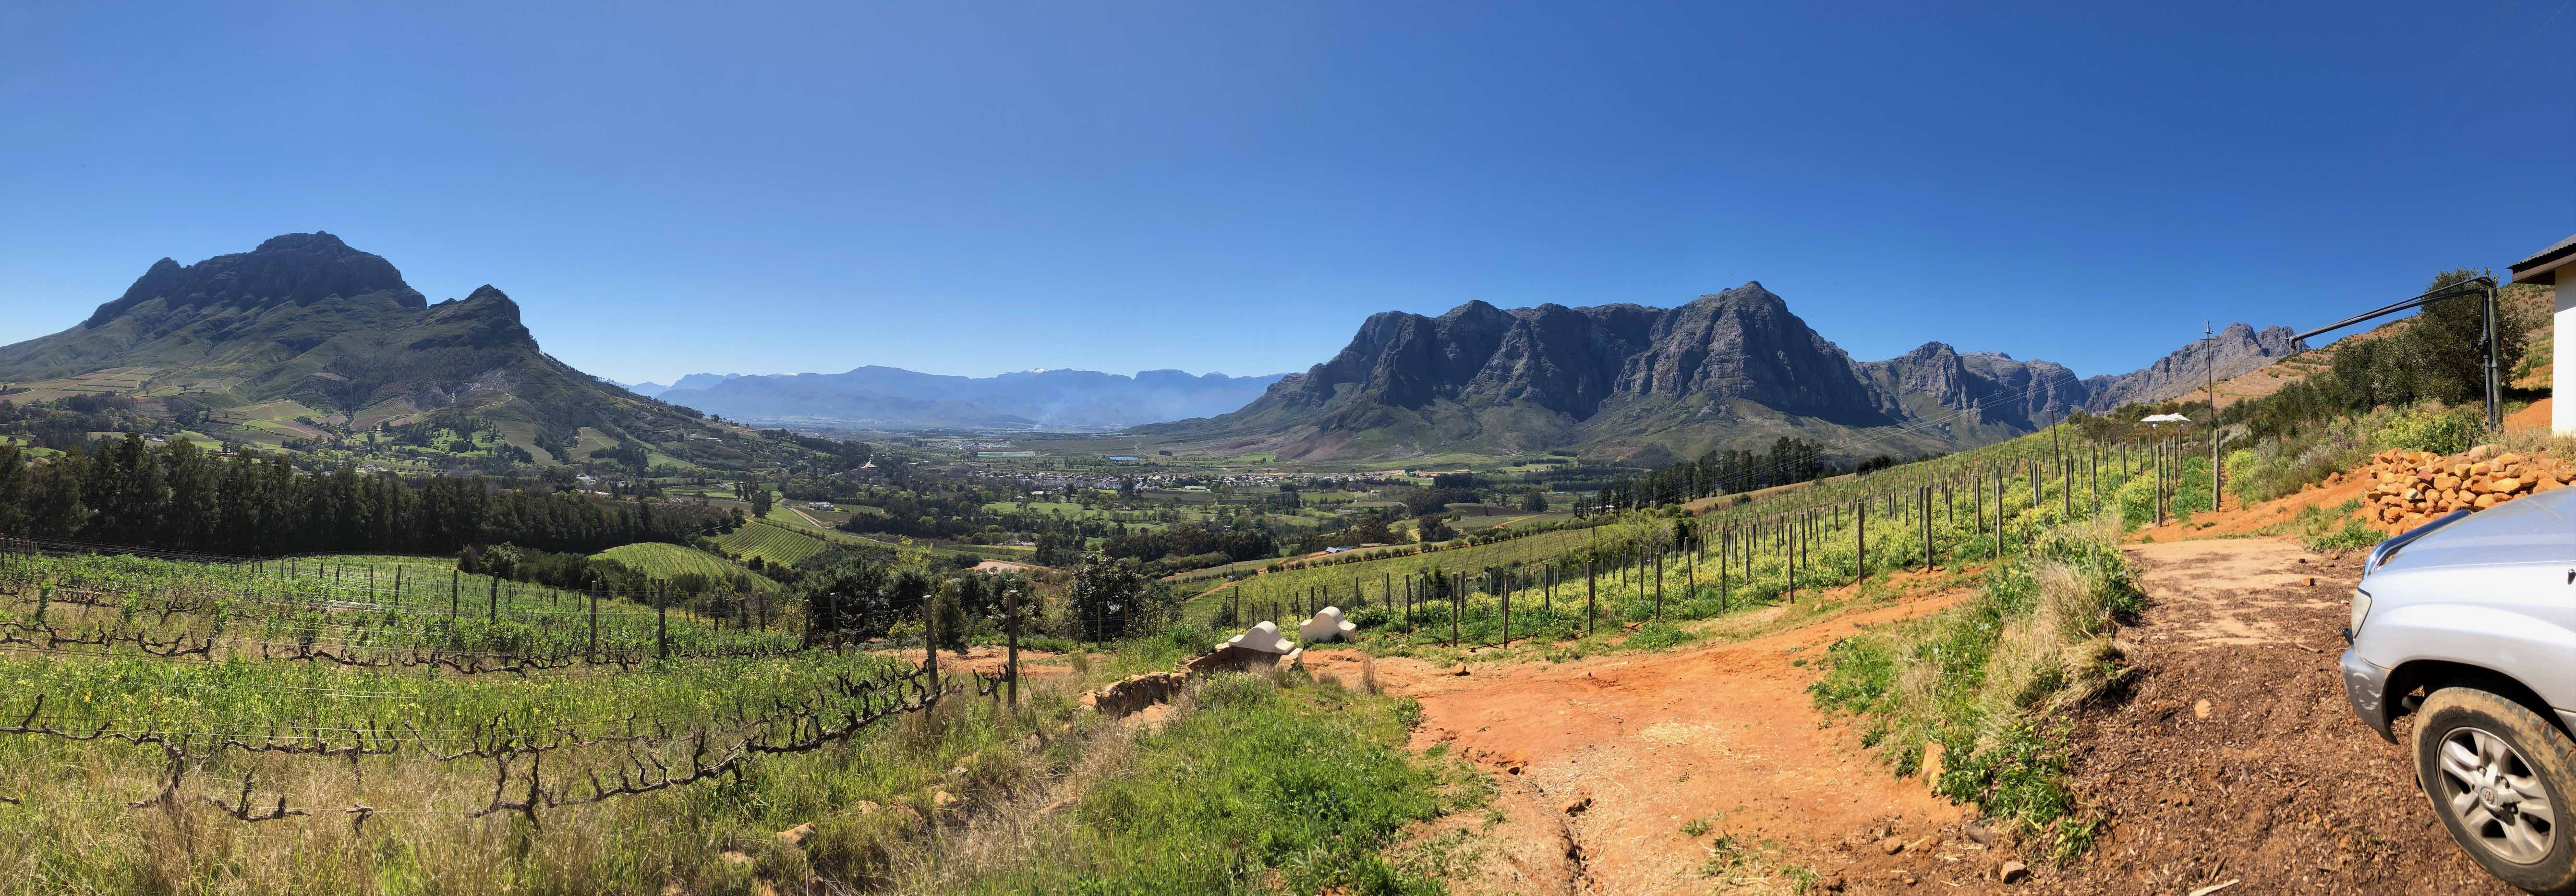 How South Africa Has The Confidence To Make World Class Wines photo